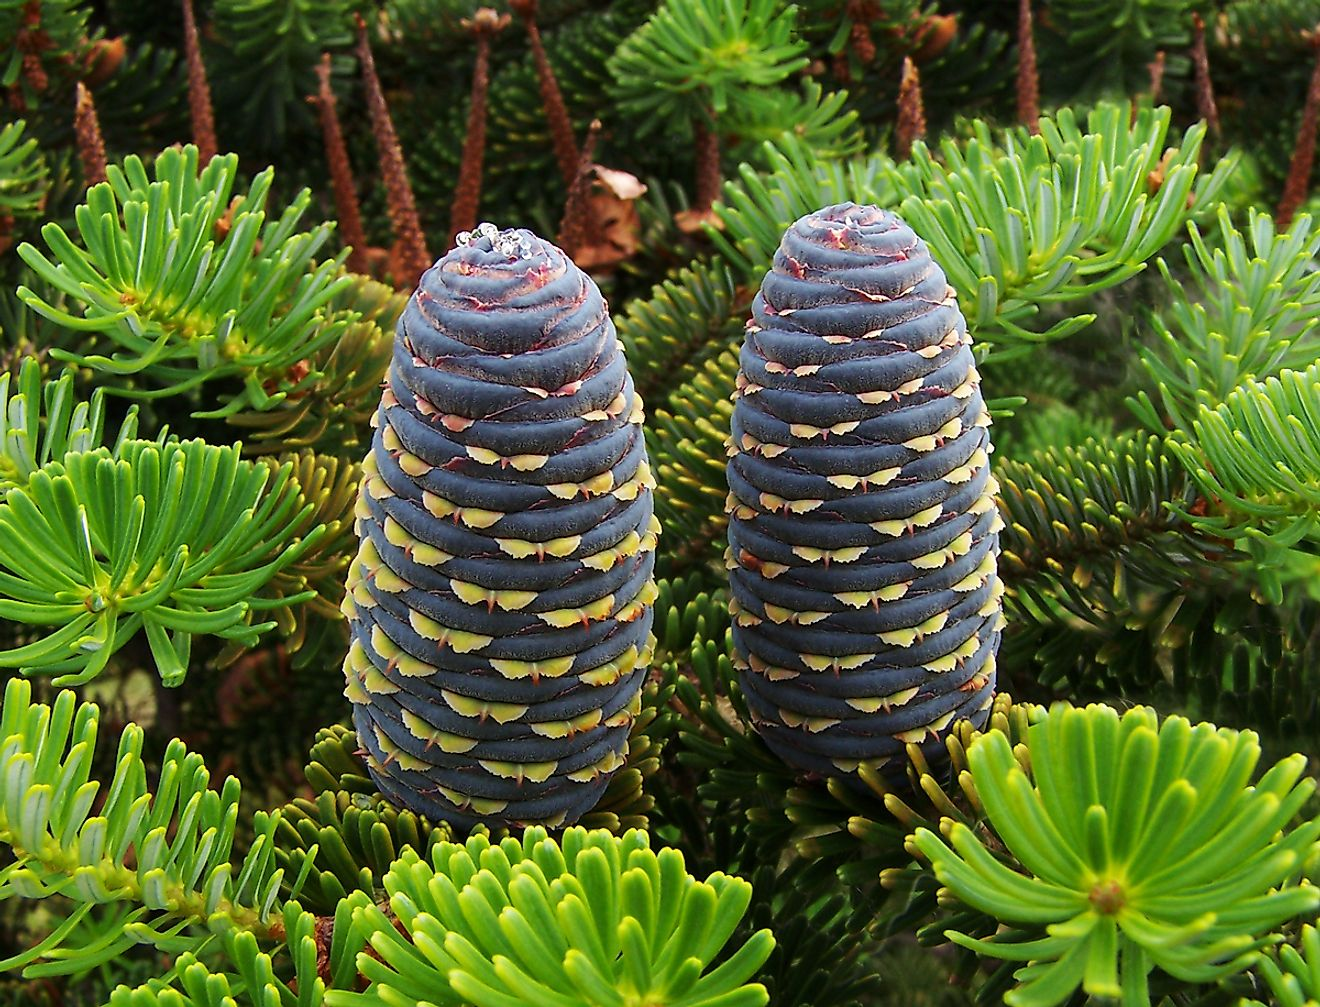 The Korean fir is an endangered species of plant that grows in specific locations across South Korea.